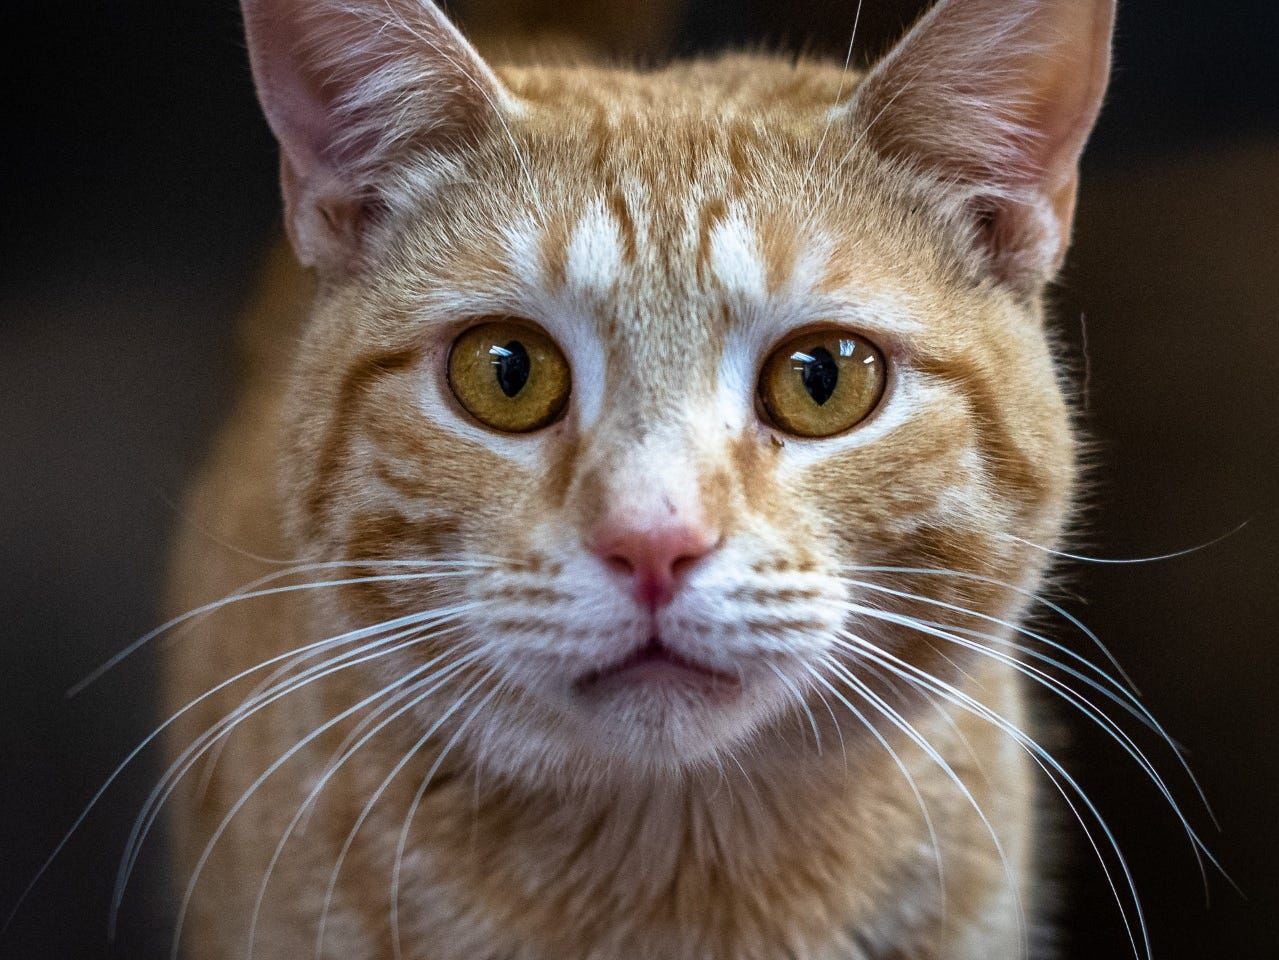 Lewis - Male domestic short hair, about 4 years old. Intake date:2/16/2019